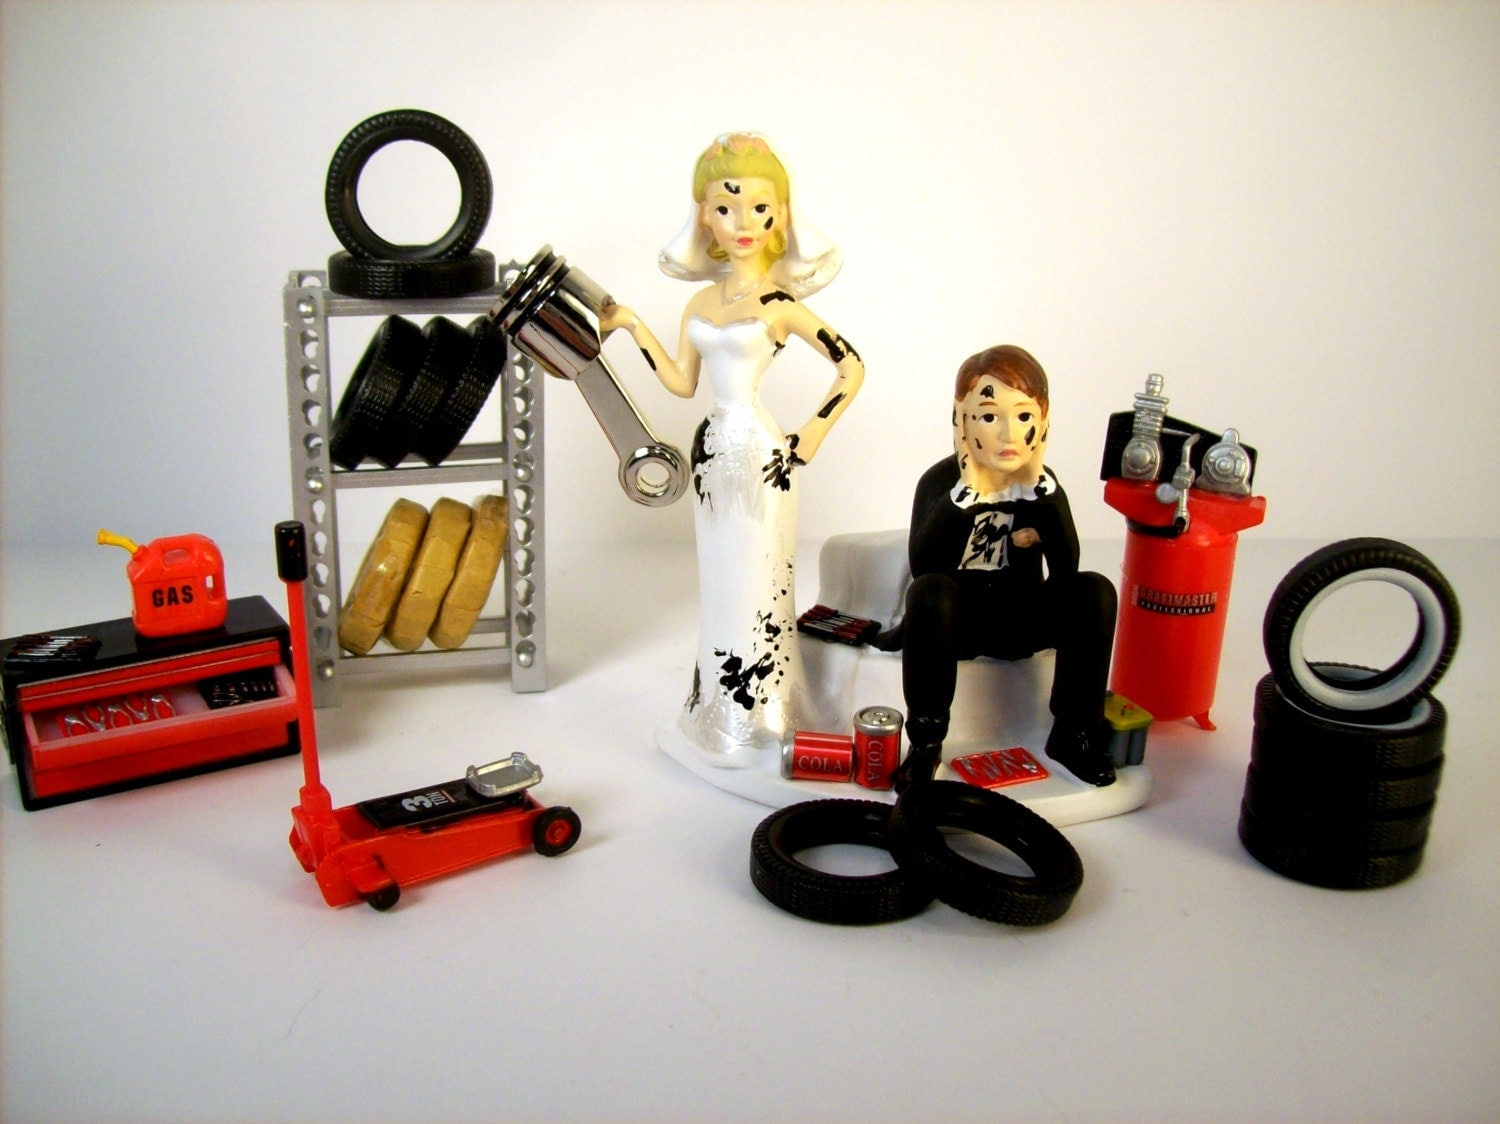 Got the PISTON Greasy Couple Funny Wedding Cake Topper